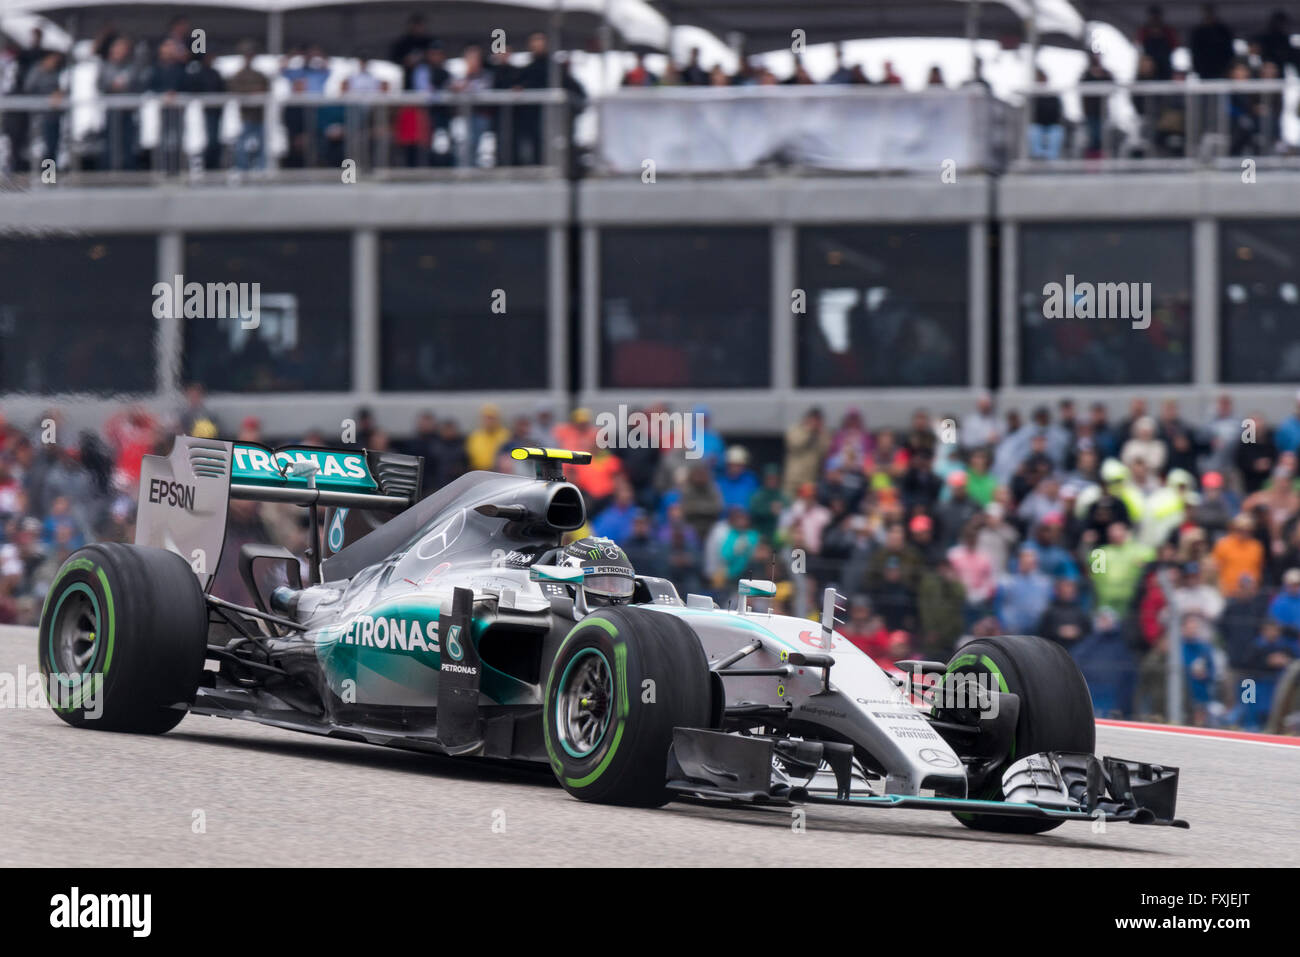 Nico Rosberg of Mercedes AMG Petronas seen during the 2015 United States Formula 1 Grand Prix at Circuit of the - Stock Image